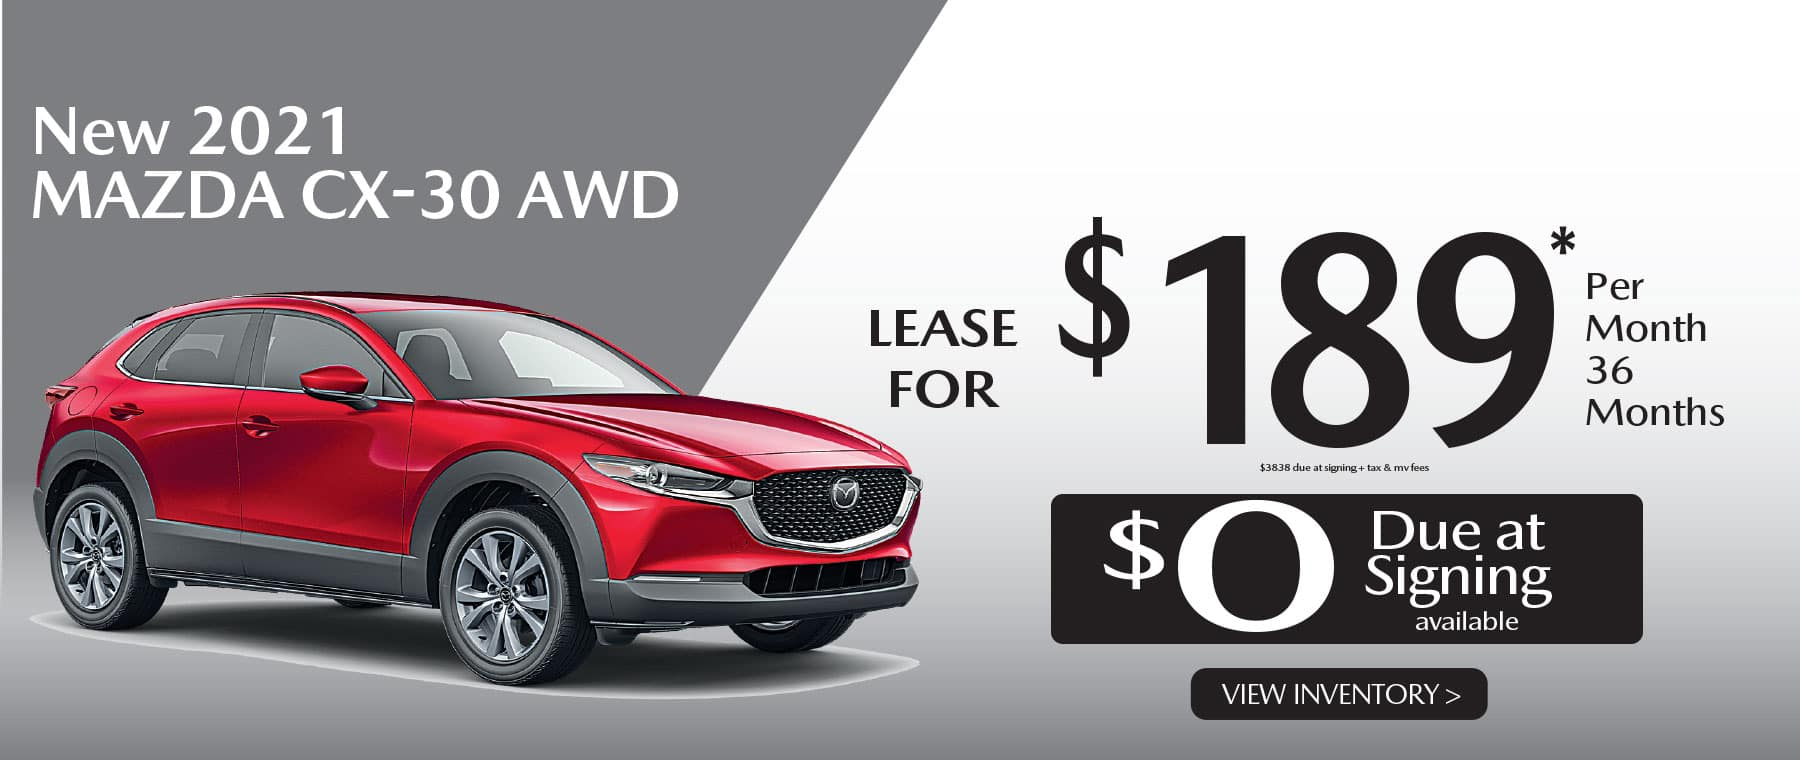 01u CX-30 hi New Lease Special Offer Garden City Mazda NY